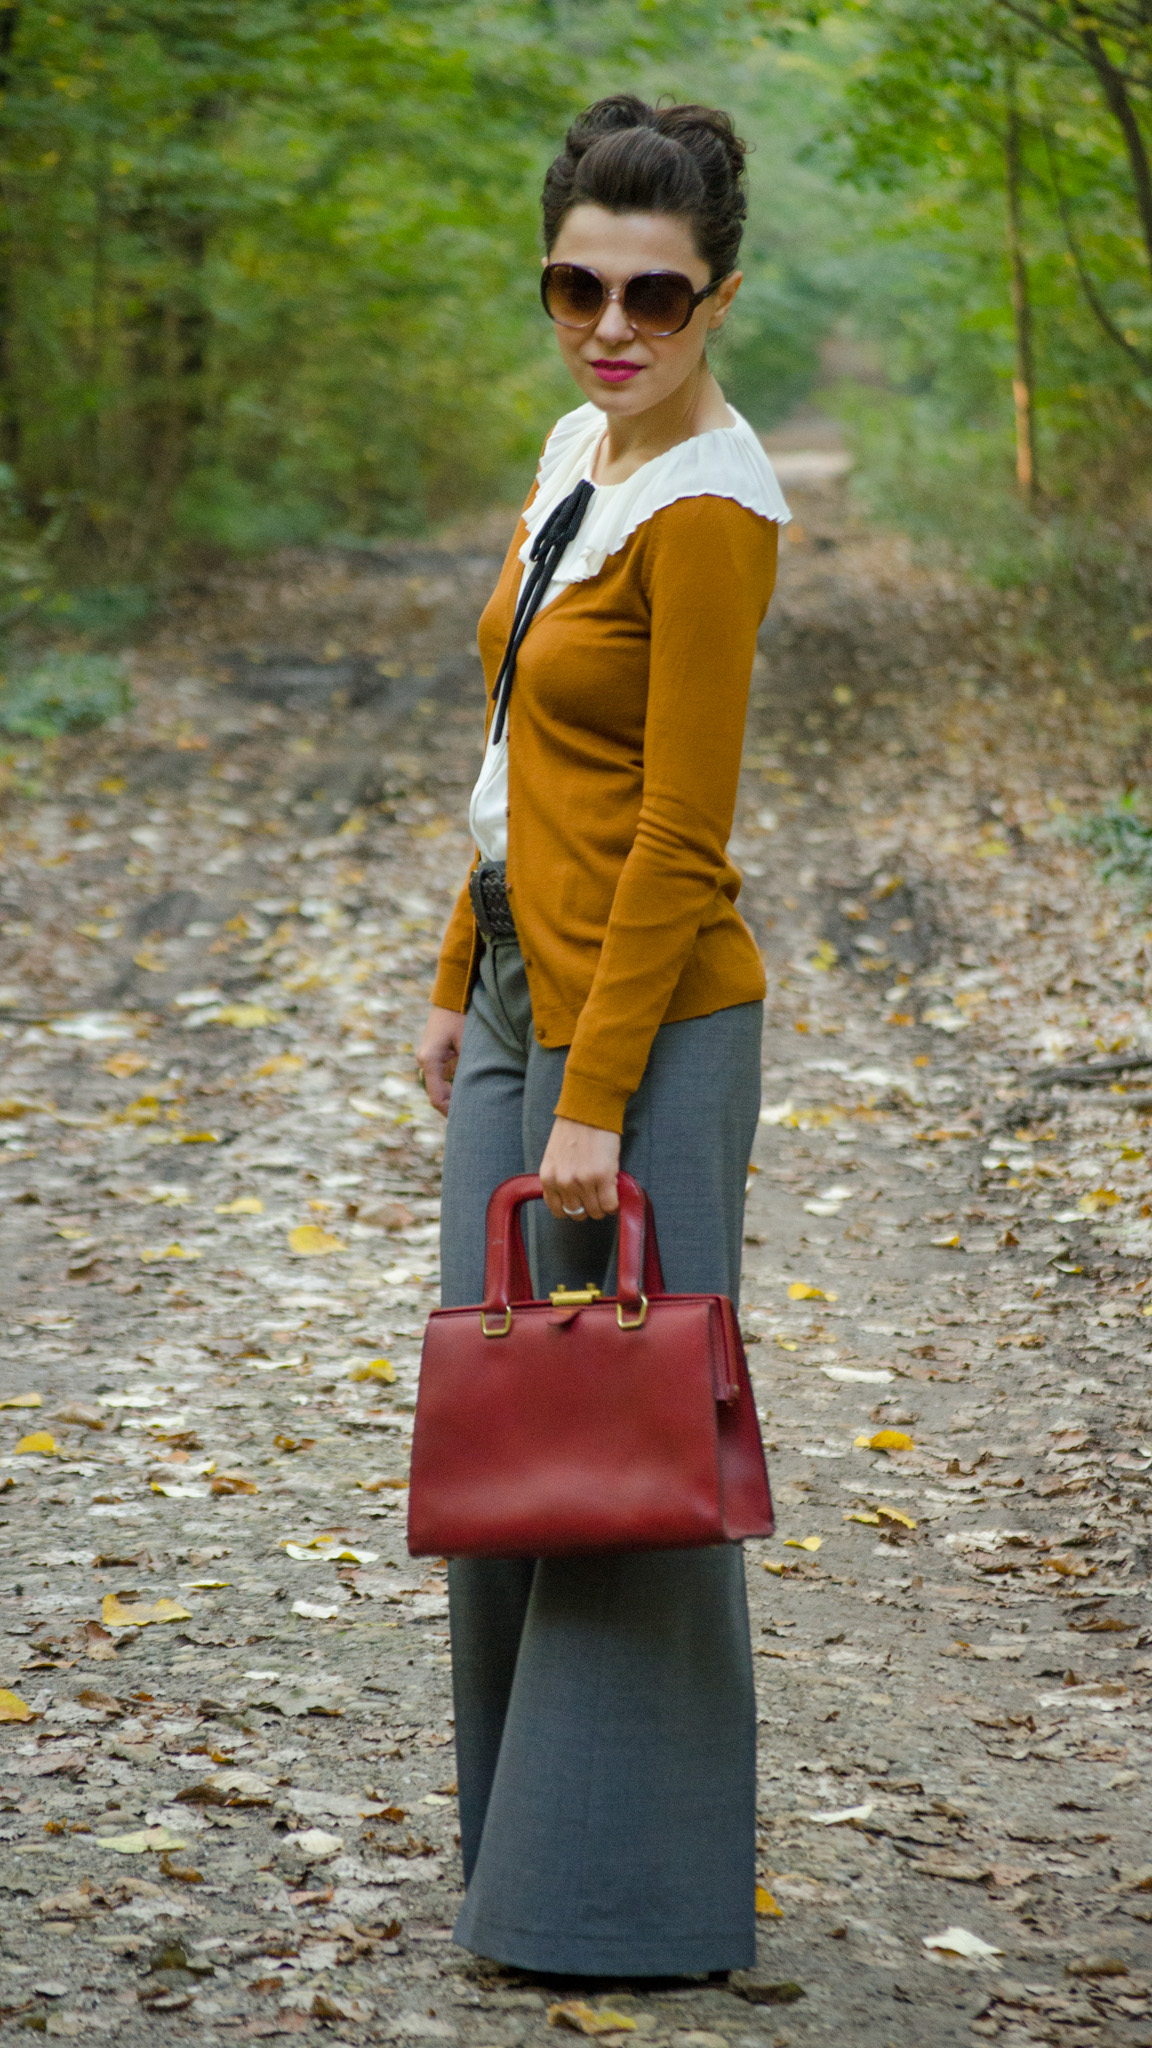 grey flare pants peter pan collar ivoire shirt black bow tie burgundy bag autumn outfit forest cardigan